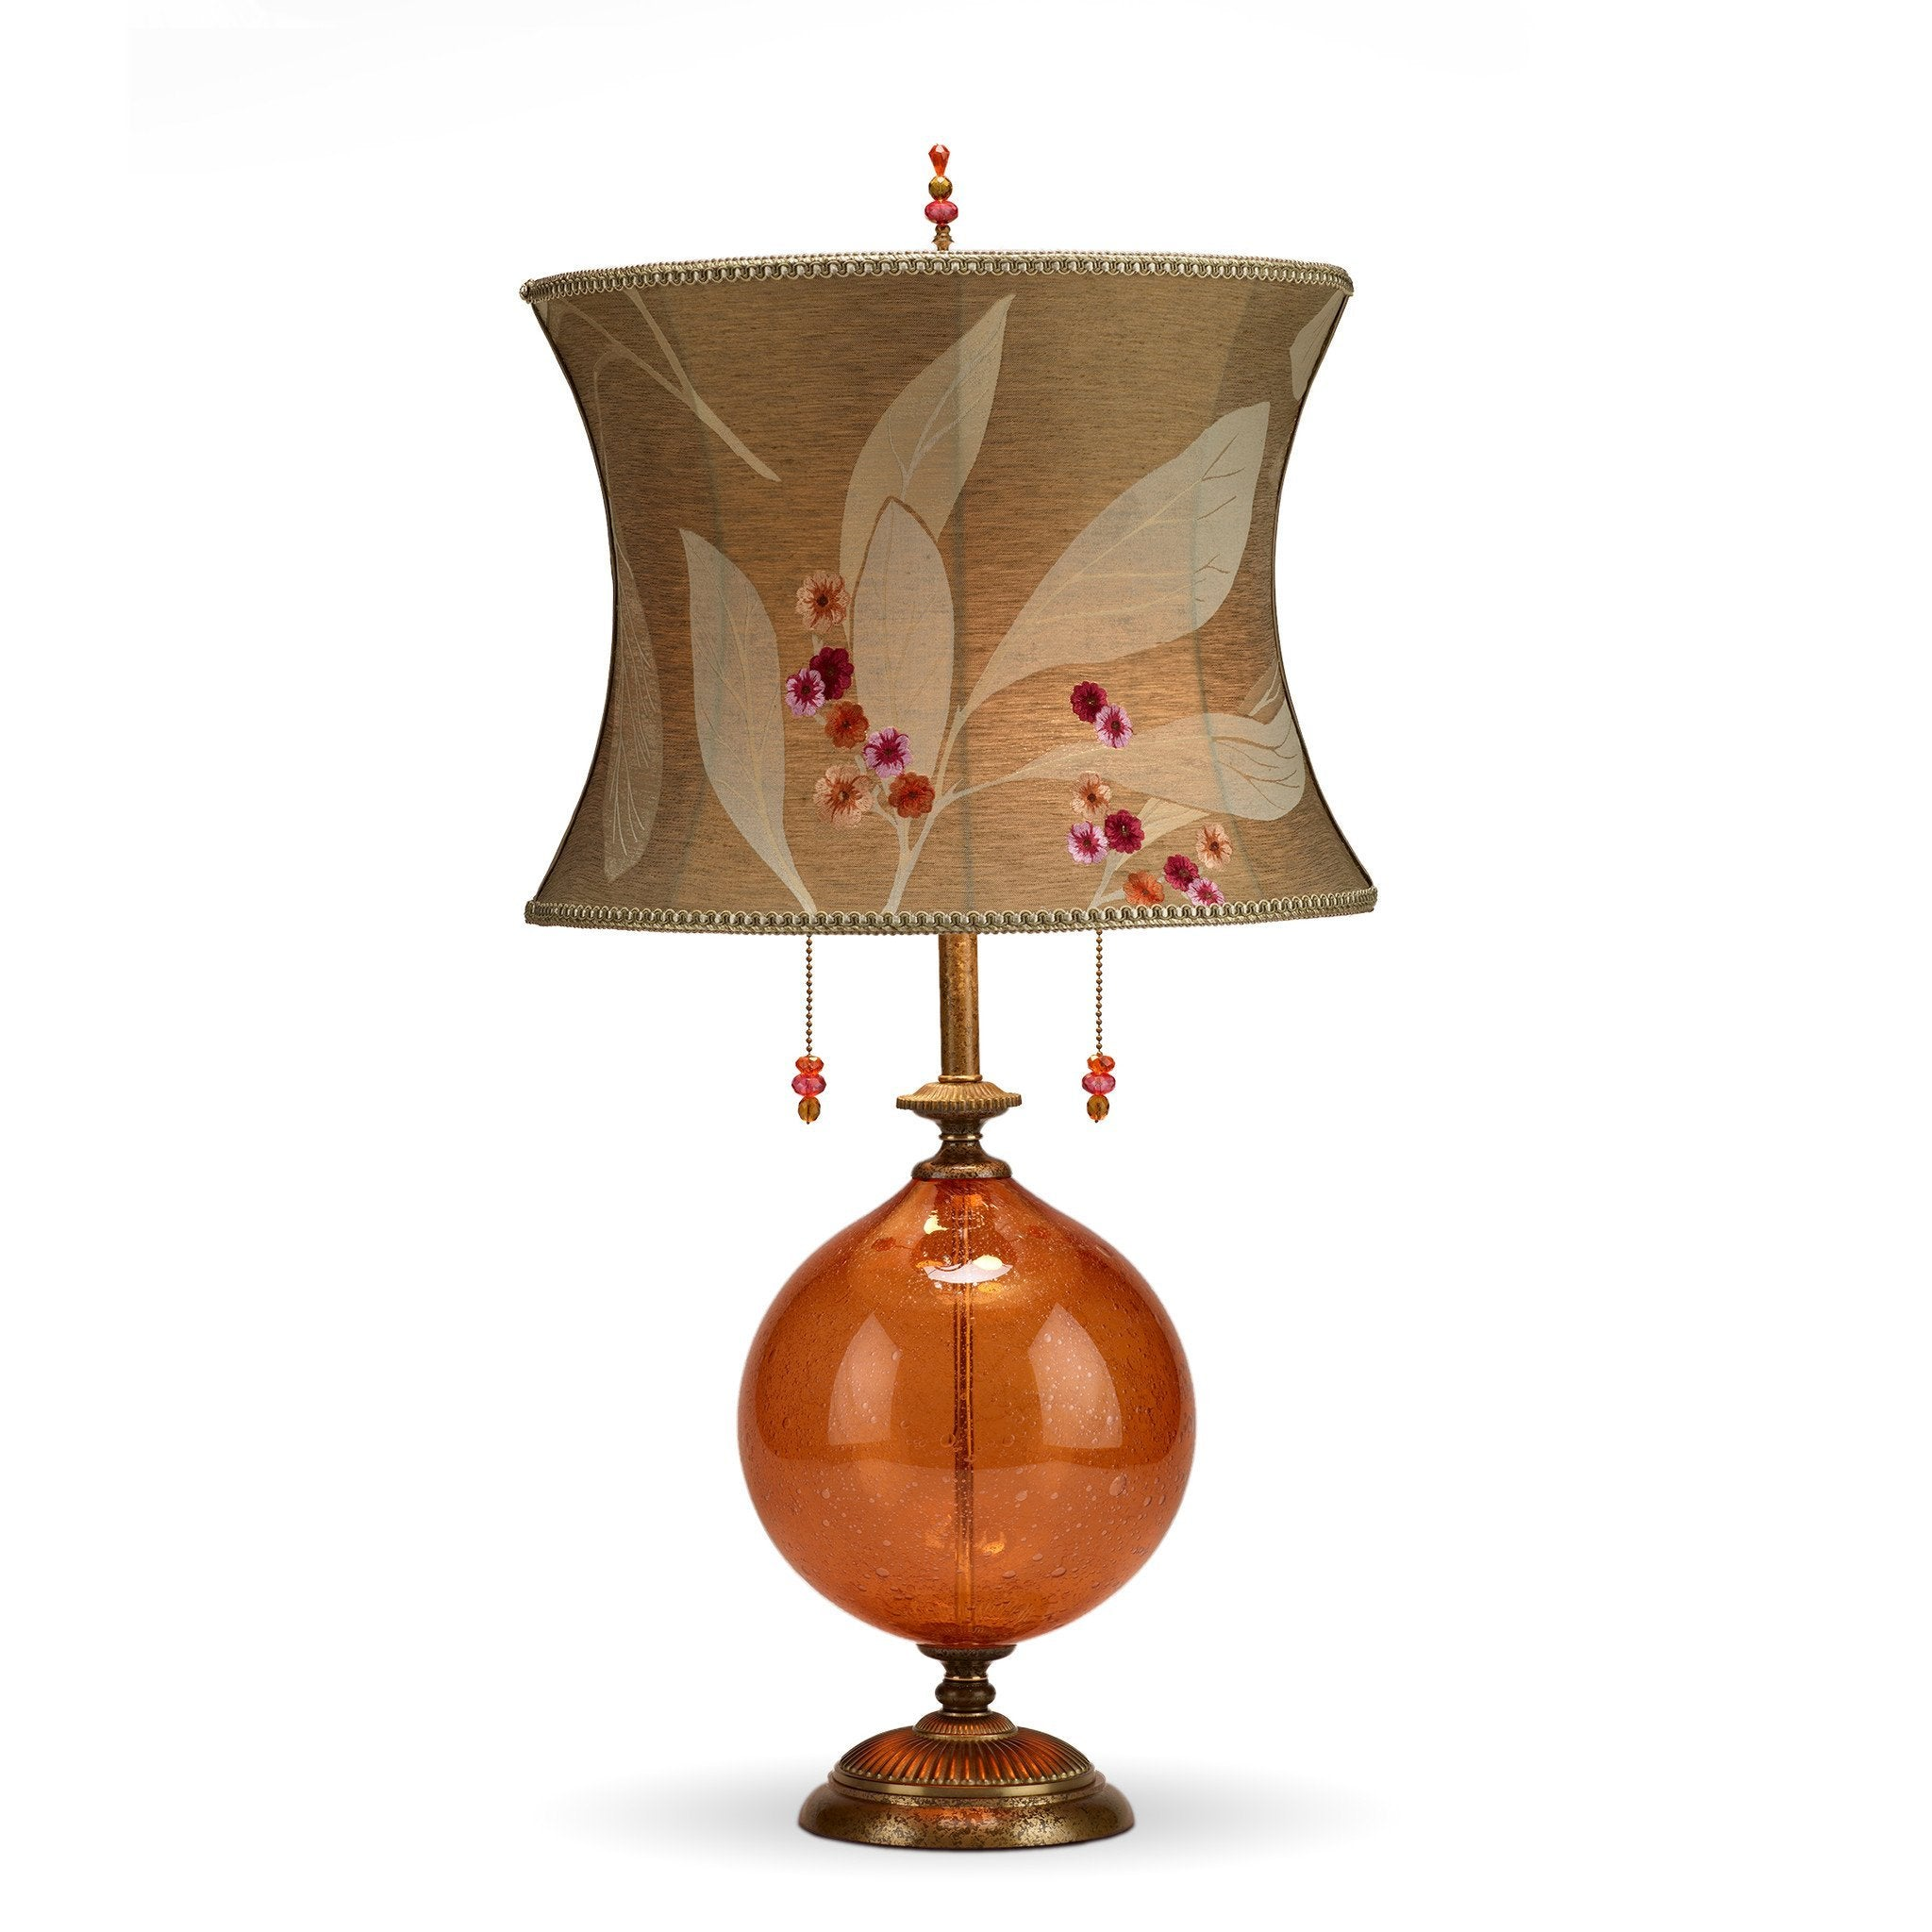 Natalia Orange Table Lamp Kinzig Design Orange Blown Glass Silk Shade Sweetheart Gallery Contemporary Craft Gallery Fine American Craft Art Design Handmade Home Personal Accessories